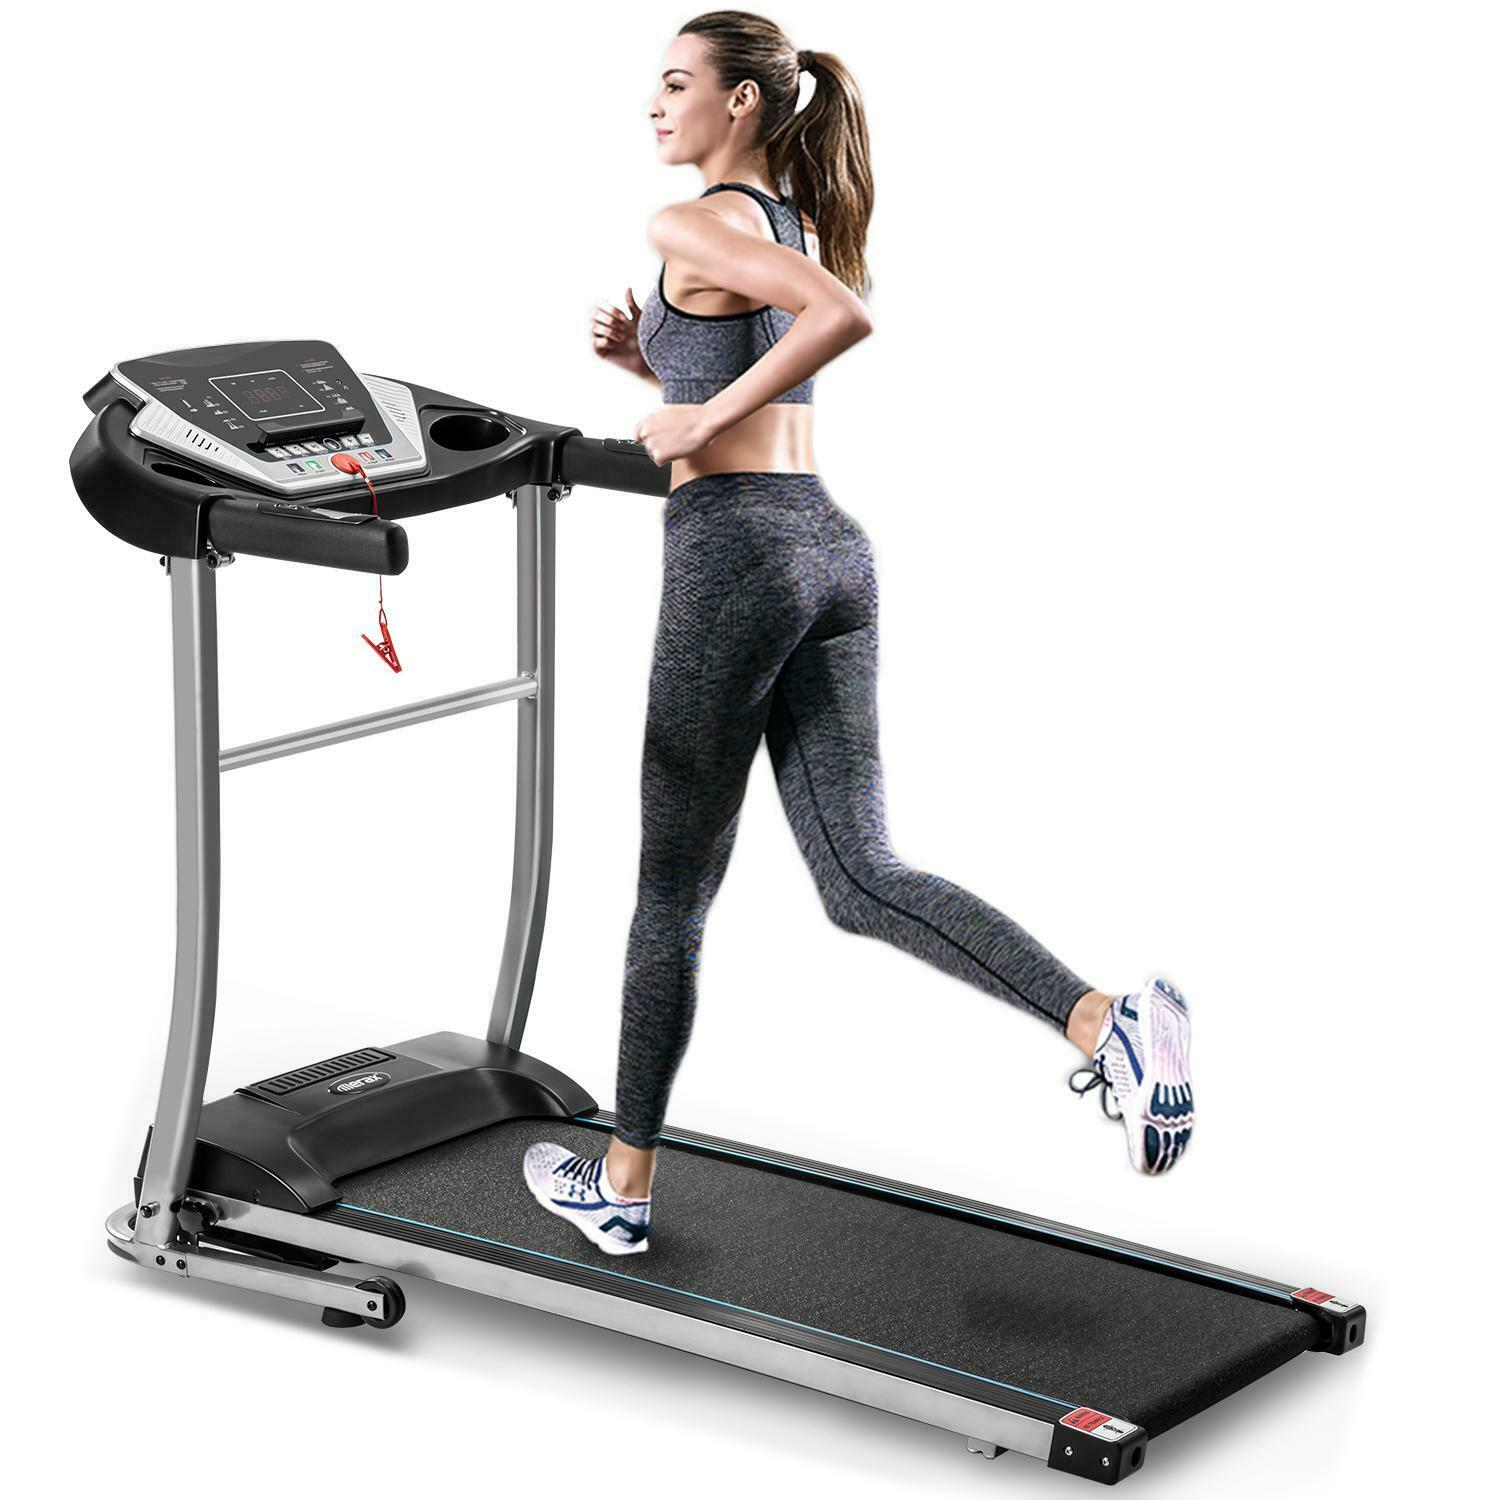 Easy Assembly Folding Electric Treadmill Motorized [Hot] Running Machine 1.5 HP